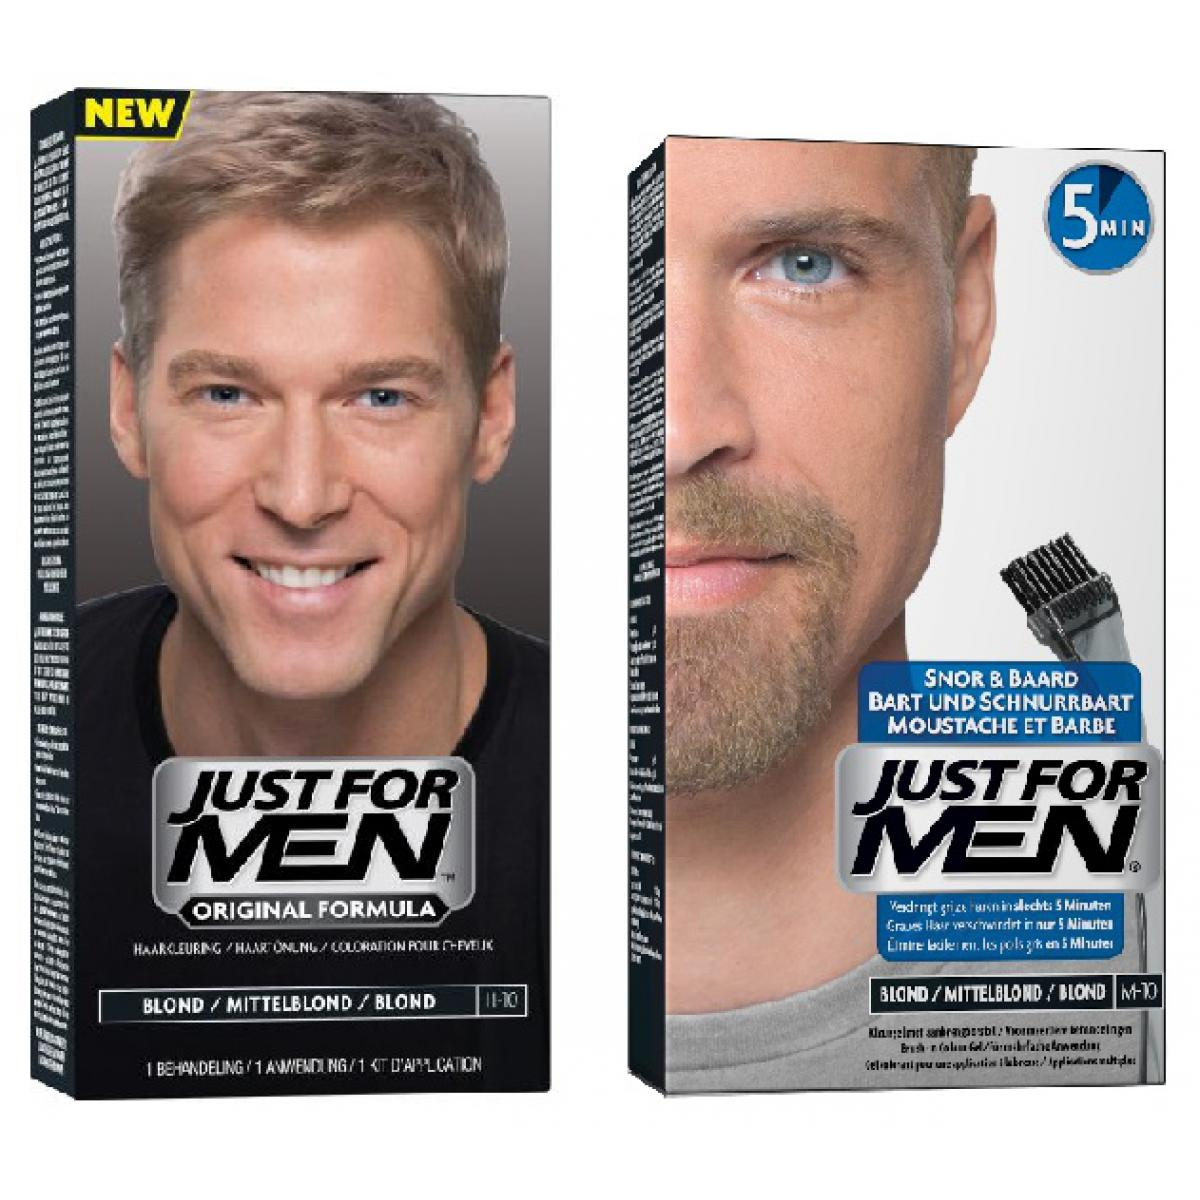 DUO COLORATION CHEVEUX & BARBE Blond - Coloration naturelle